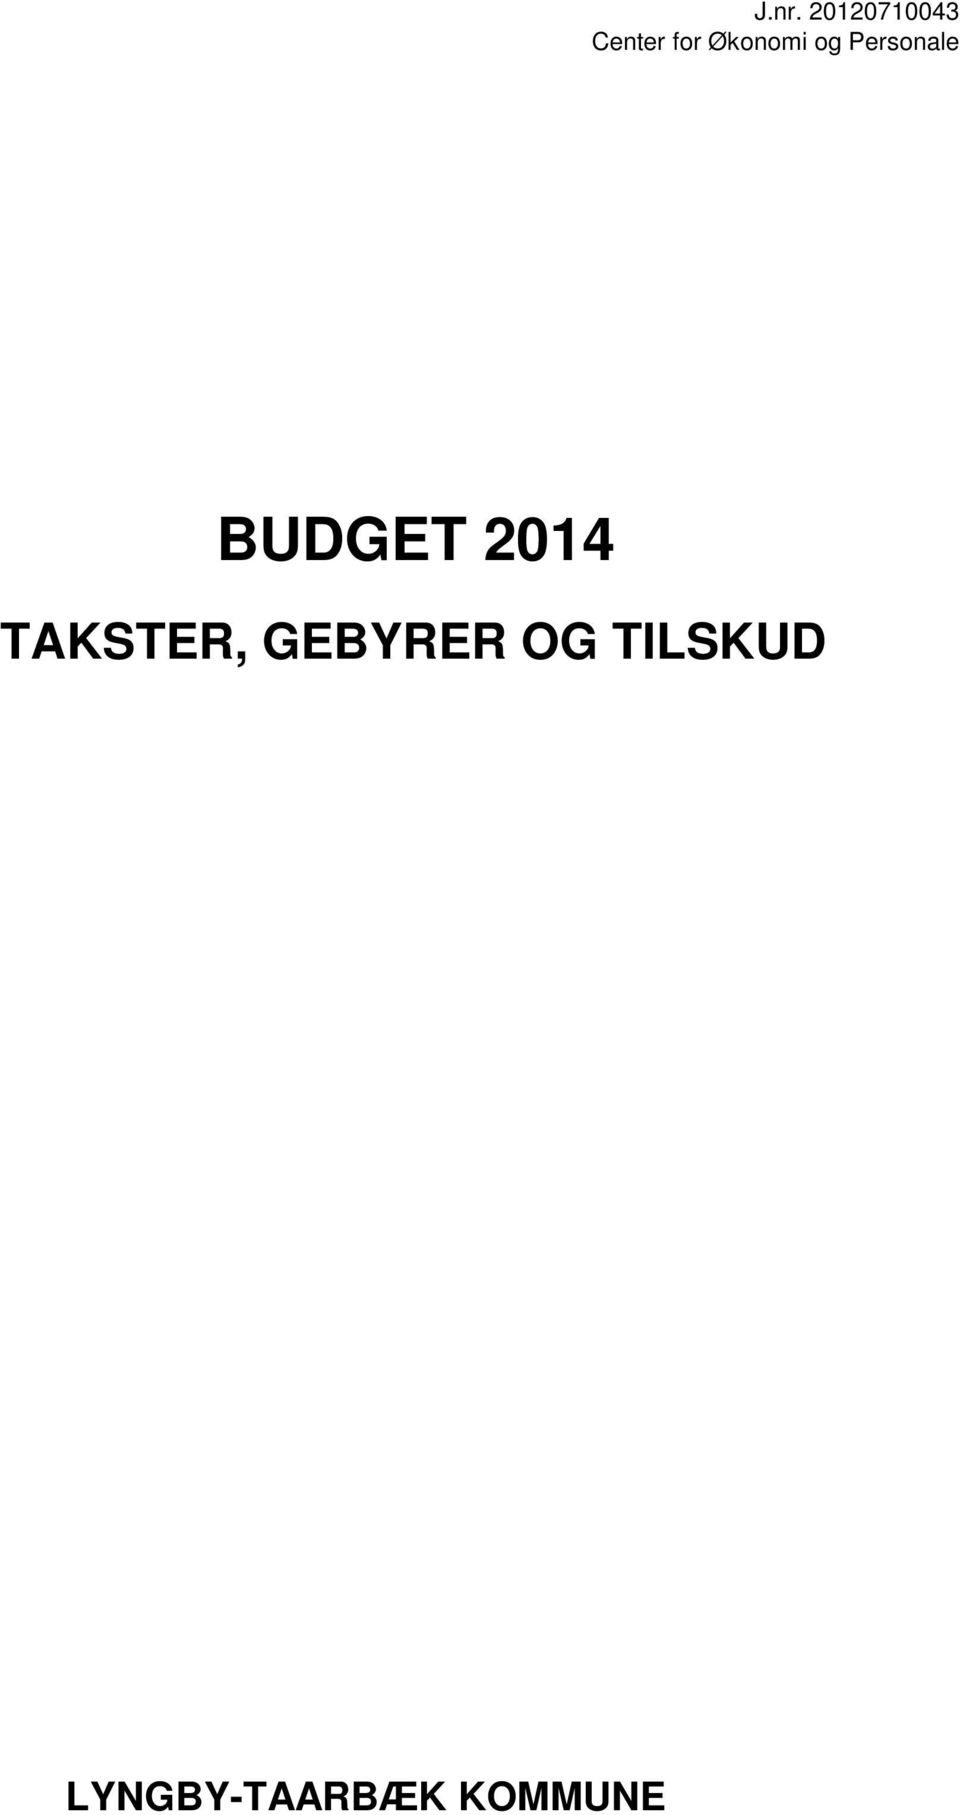 BUDGET 2014 TAKSTER,